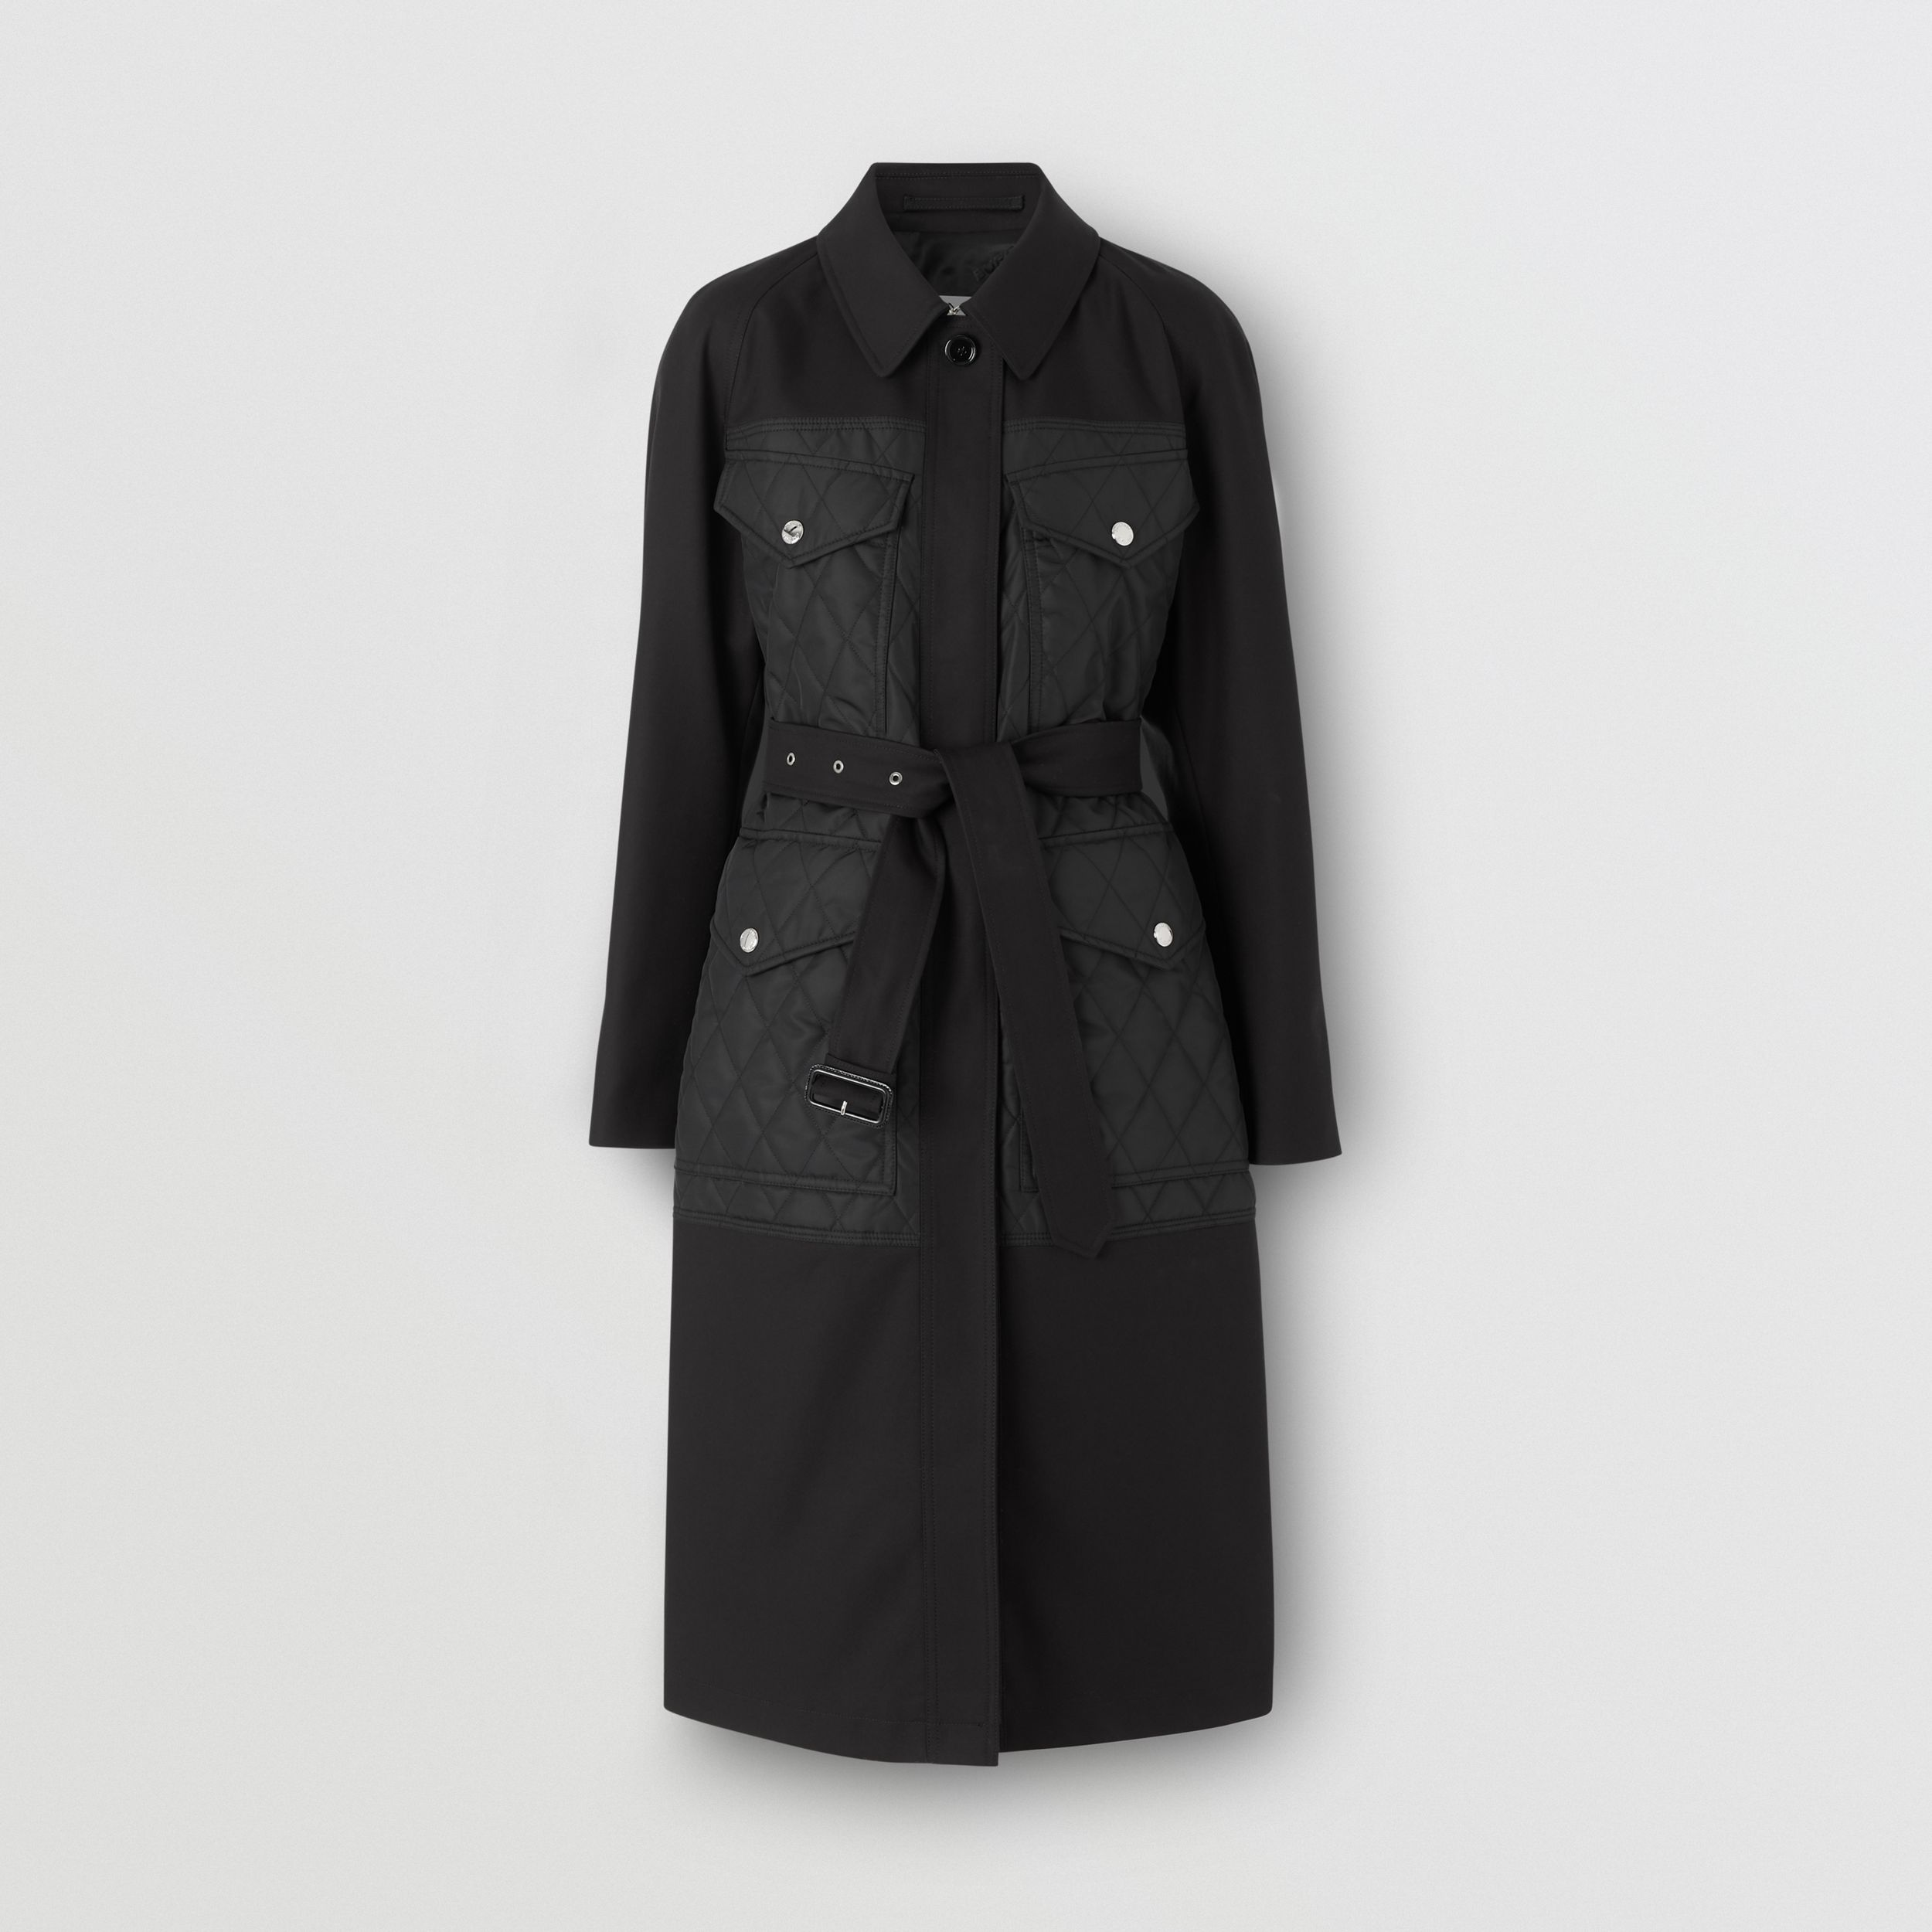 Diamond Quilted Panel Cotton Gabardine Car Coat in Black - Women | Burberry United Kingdom - 4